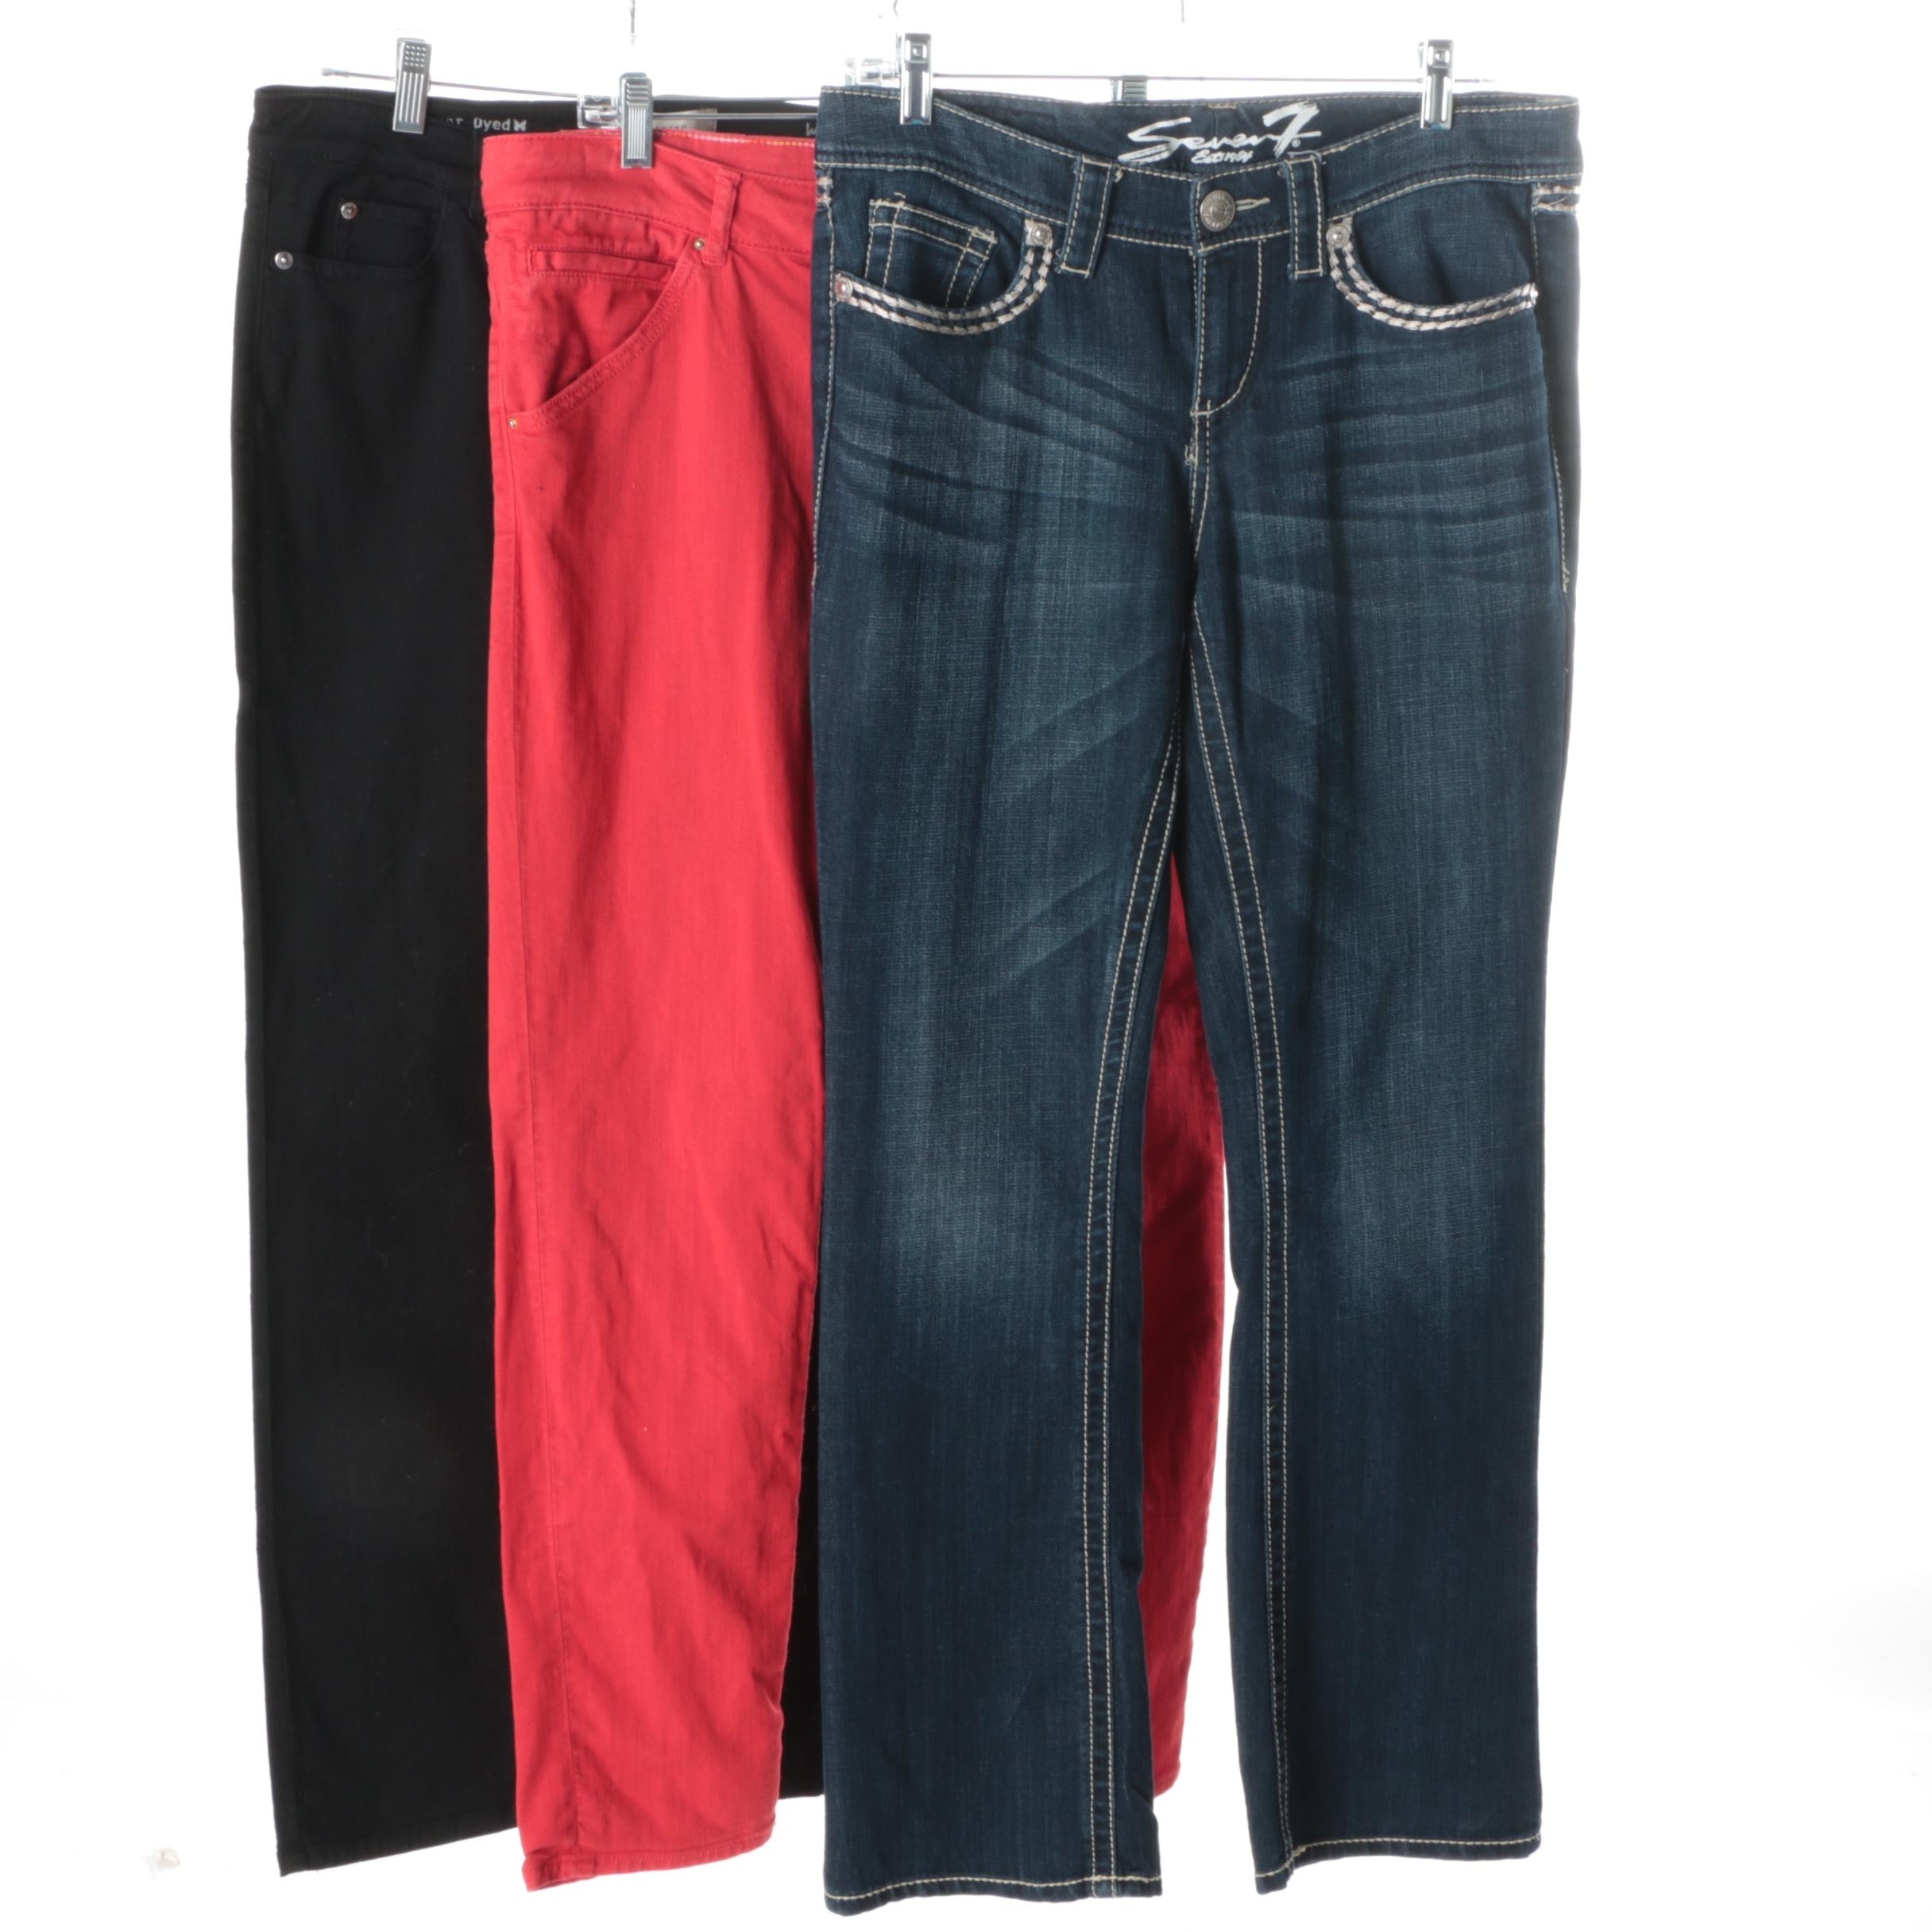 Women's Jeans Including M Missoni Denim